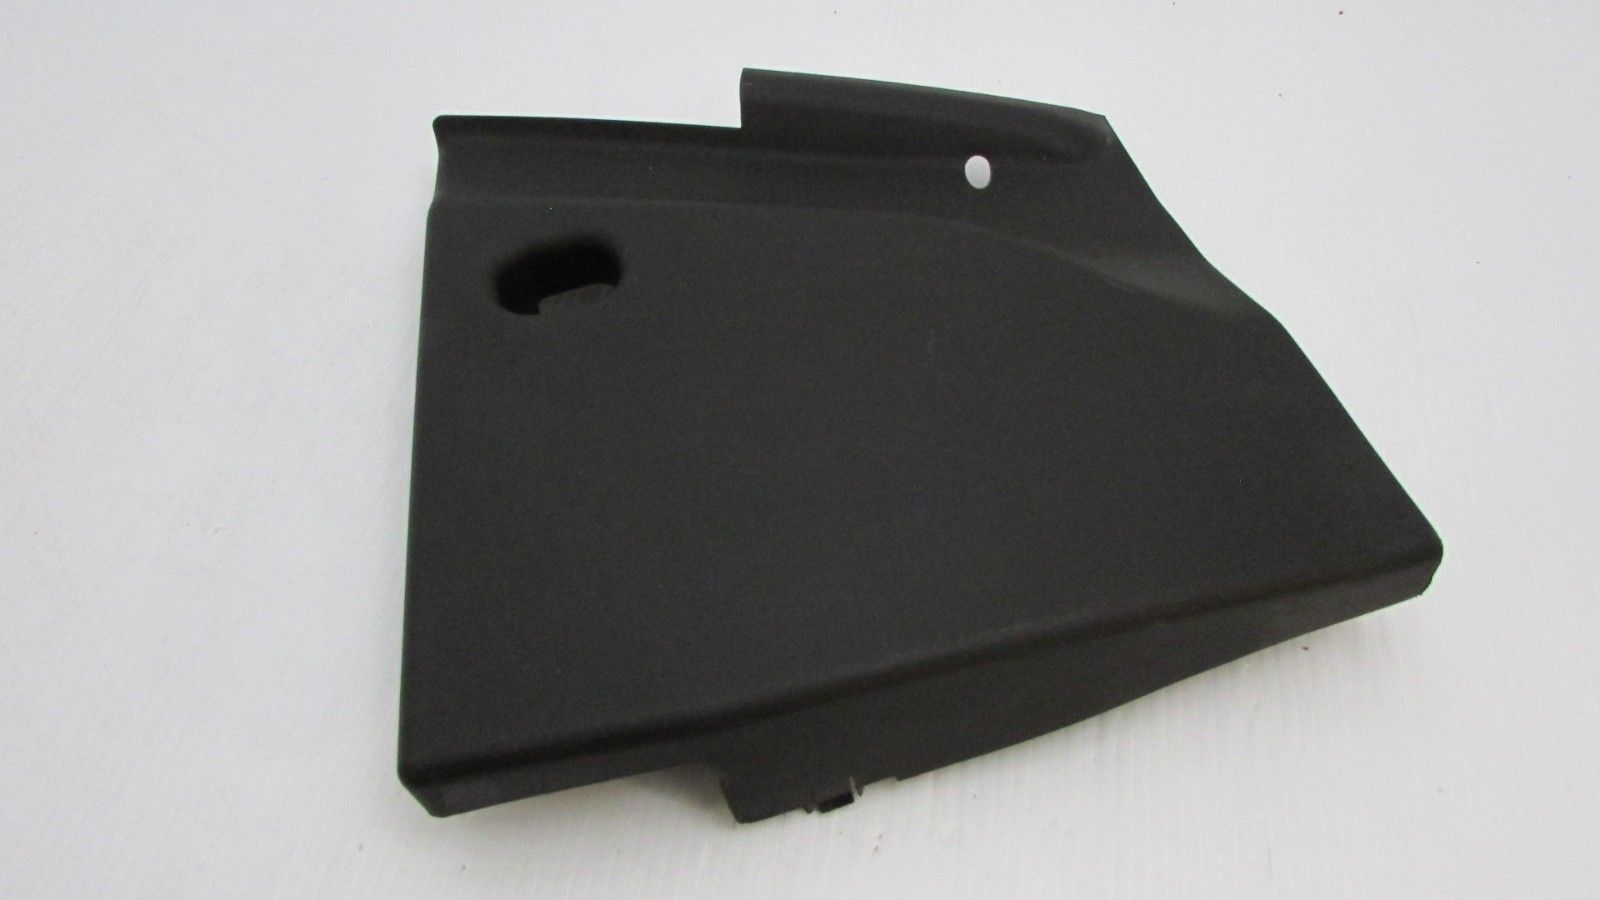 04 05 06 Acura Tl Engine Bay Battery Cover Plastic Trim 2004 2005 2006 Sacramento Auto Parts Inc